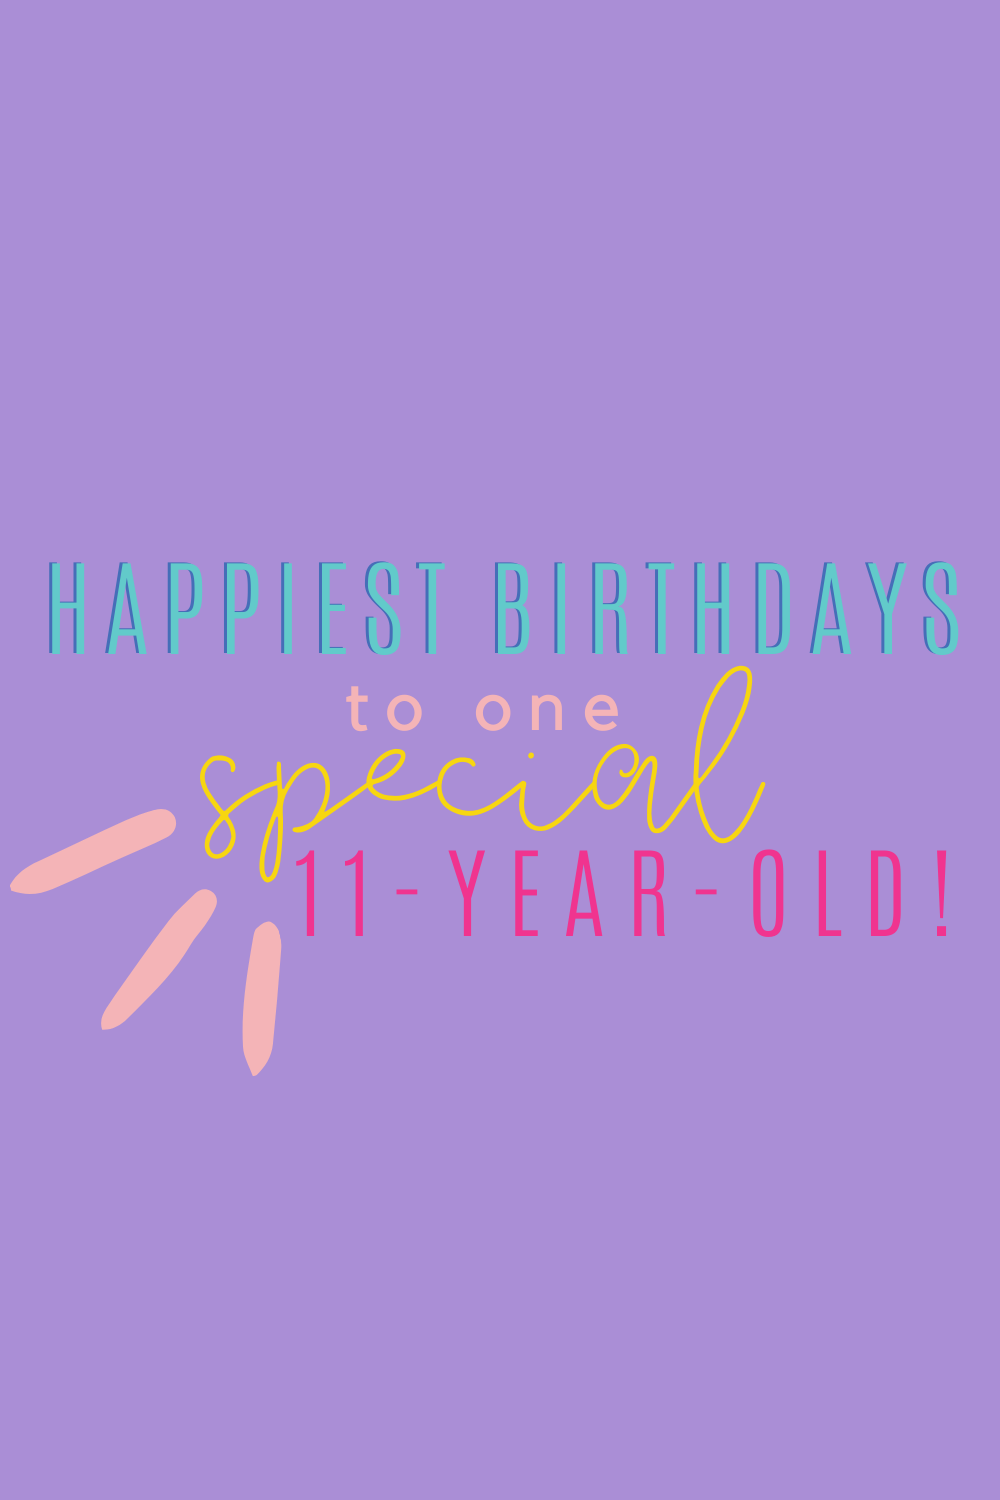 Totally Rad 11 Year Old Birthday Quotes Darling Quote